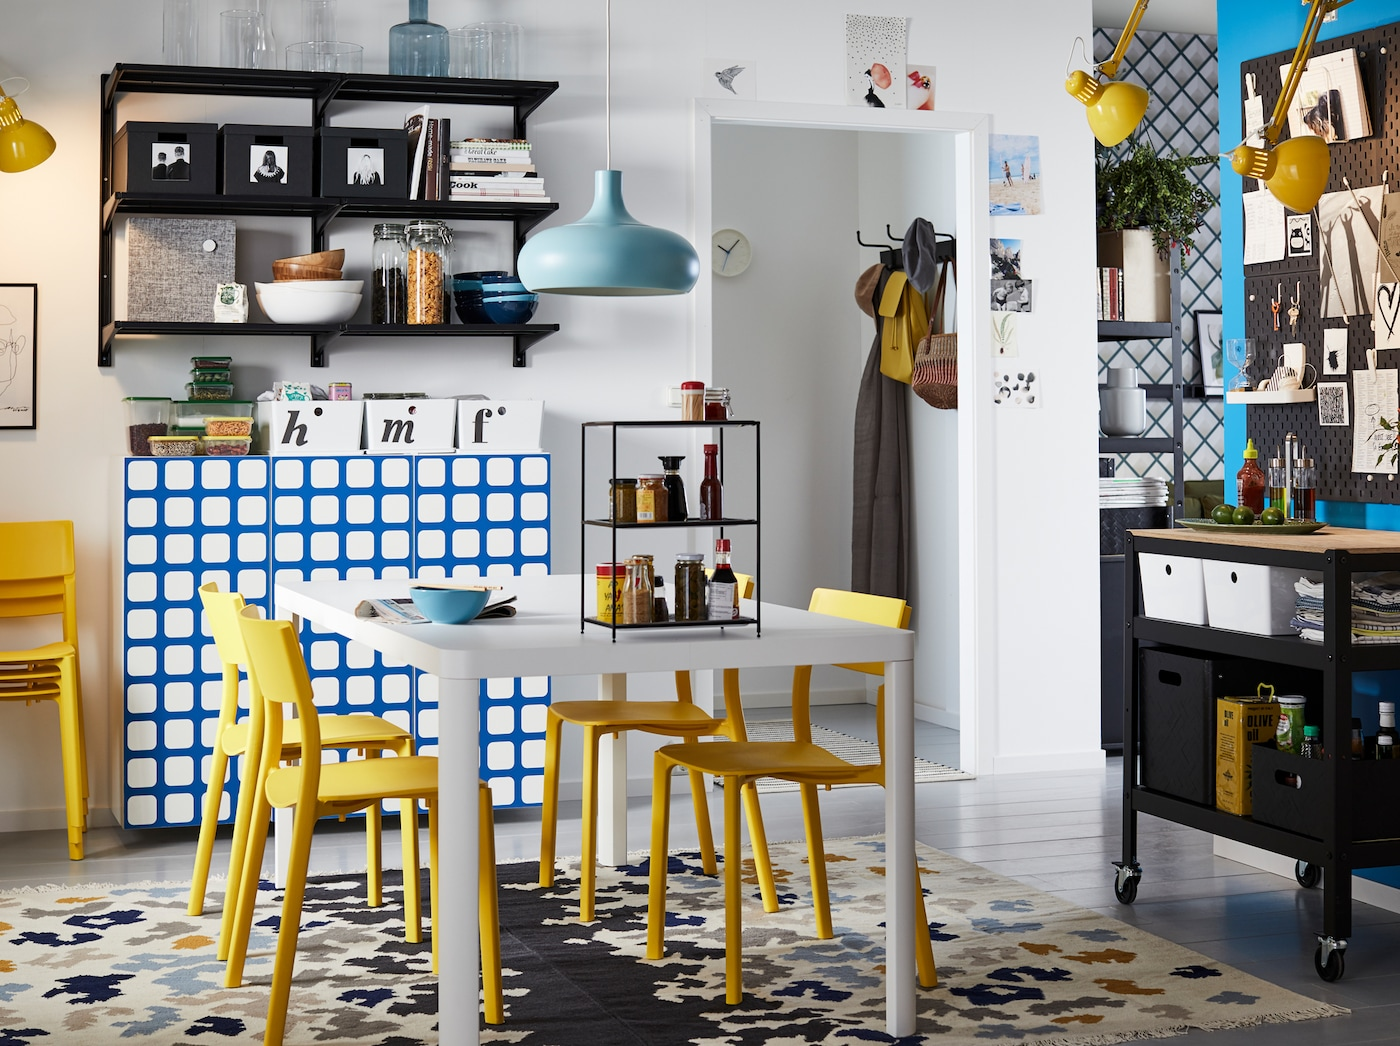 A hip modern dining space for first time flatmates